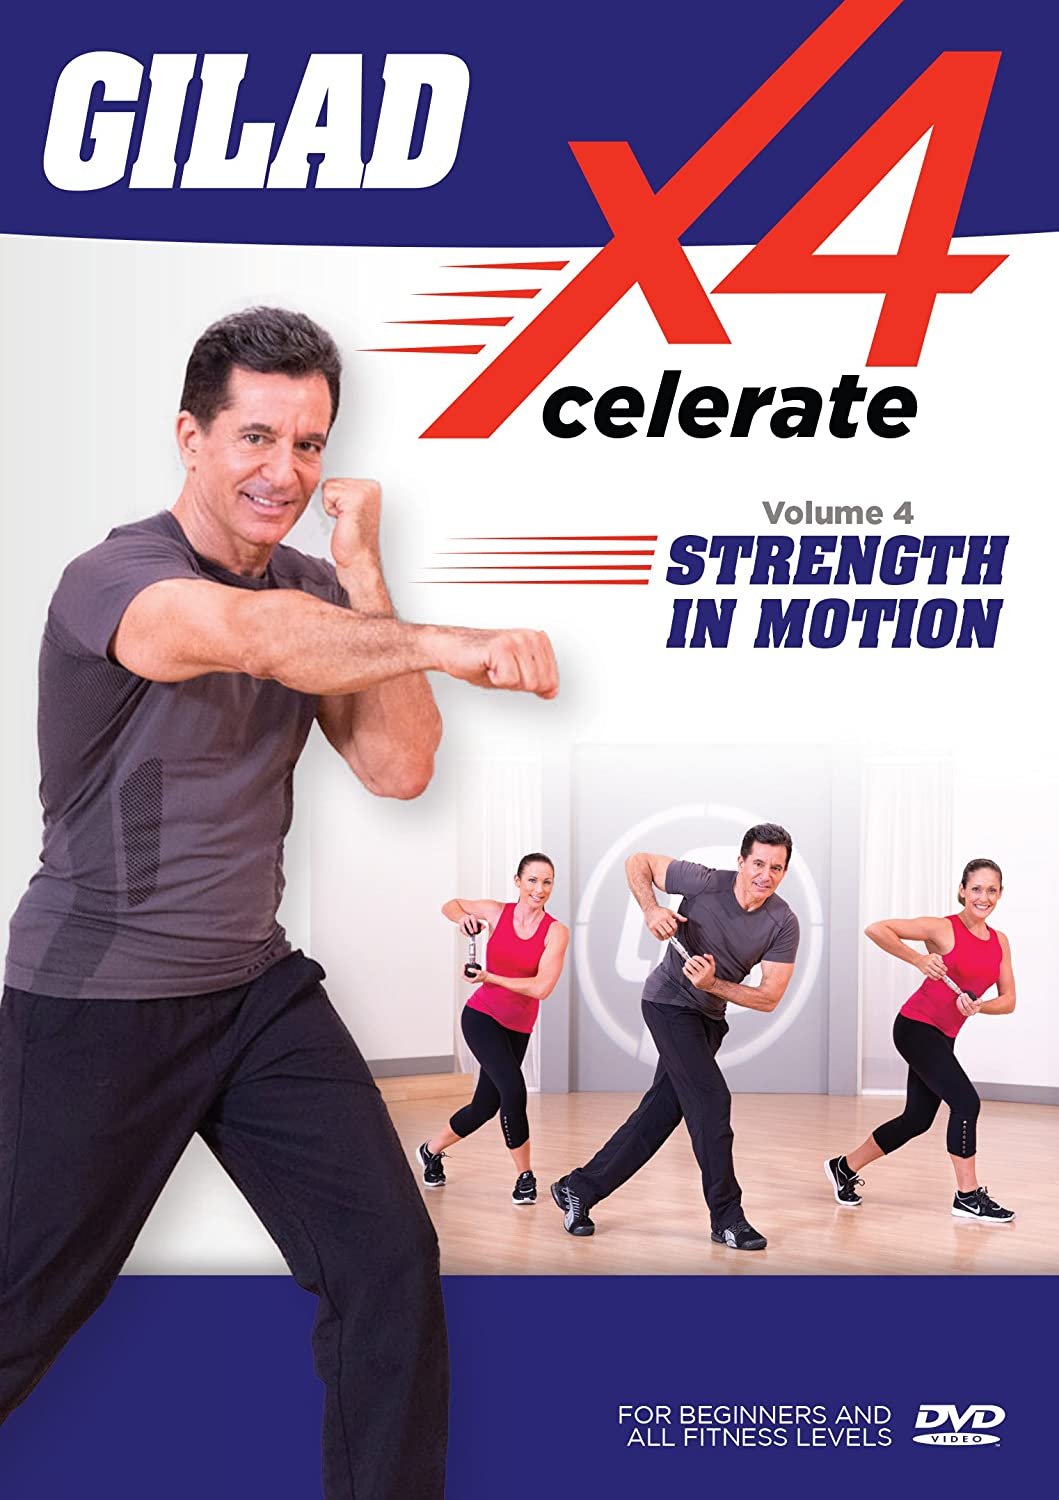 Gilad Xcelerate 4: Volume 4 - Strength in Motion